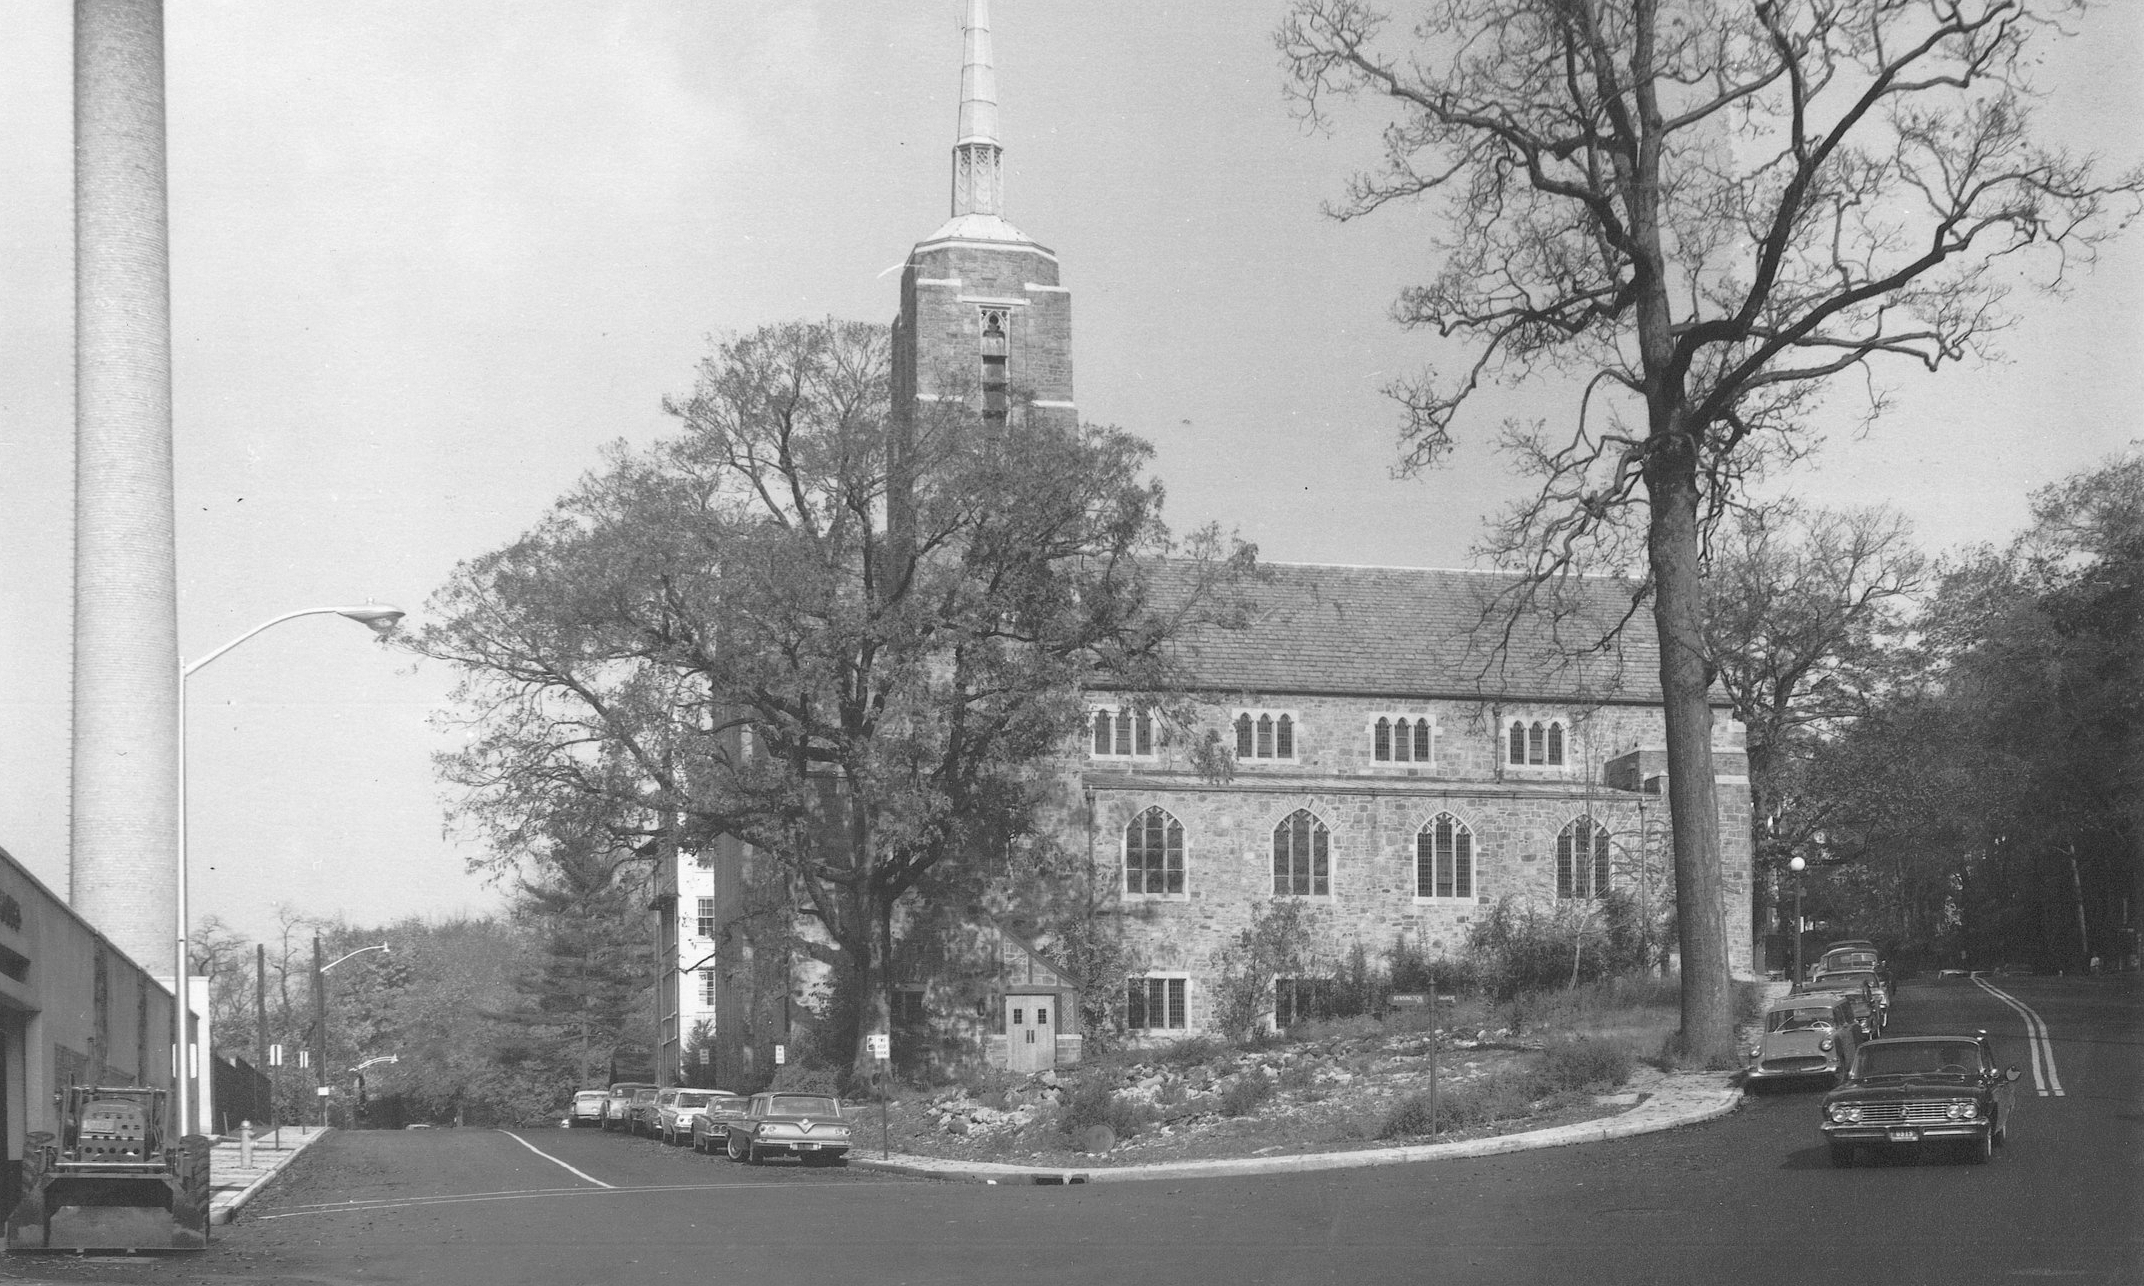 1960 - A semi-circular drive and covered walkway was built to connect the newly obtained parish house to Christ Church. Shown here, the original church building was demolished and is now where the columbarium resides.The new parish hall and offices bestowed Christ Church with a 50,000 sq. ft. campus for programatic activity. It is in this current footprint which Christ Church continues to grow and thrive today.